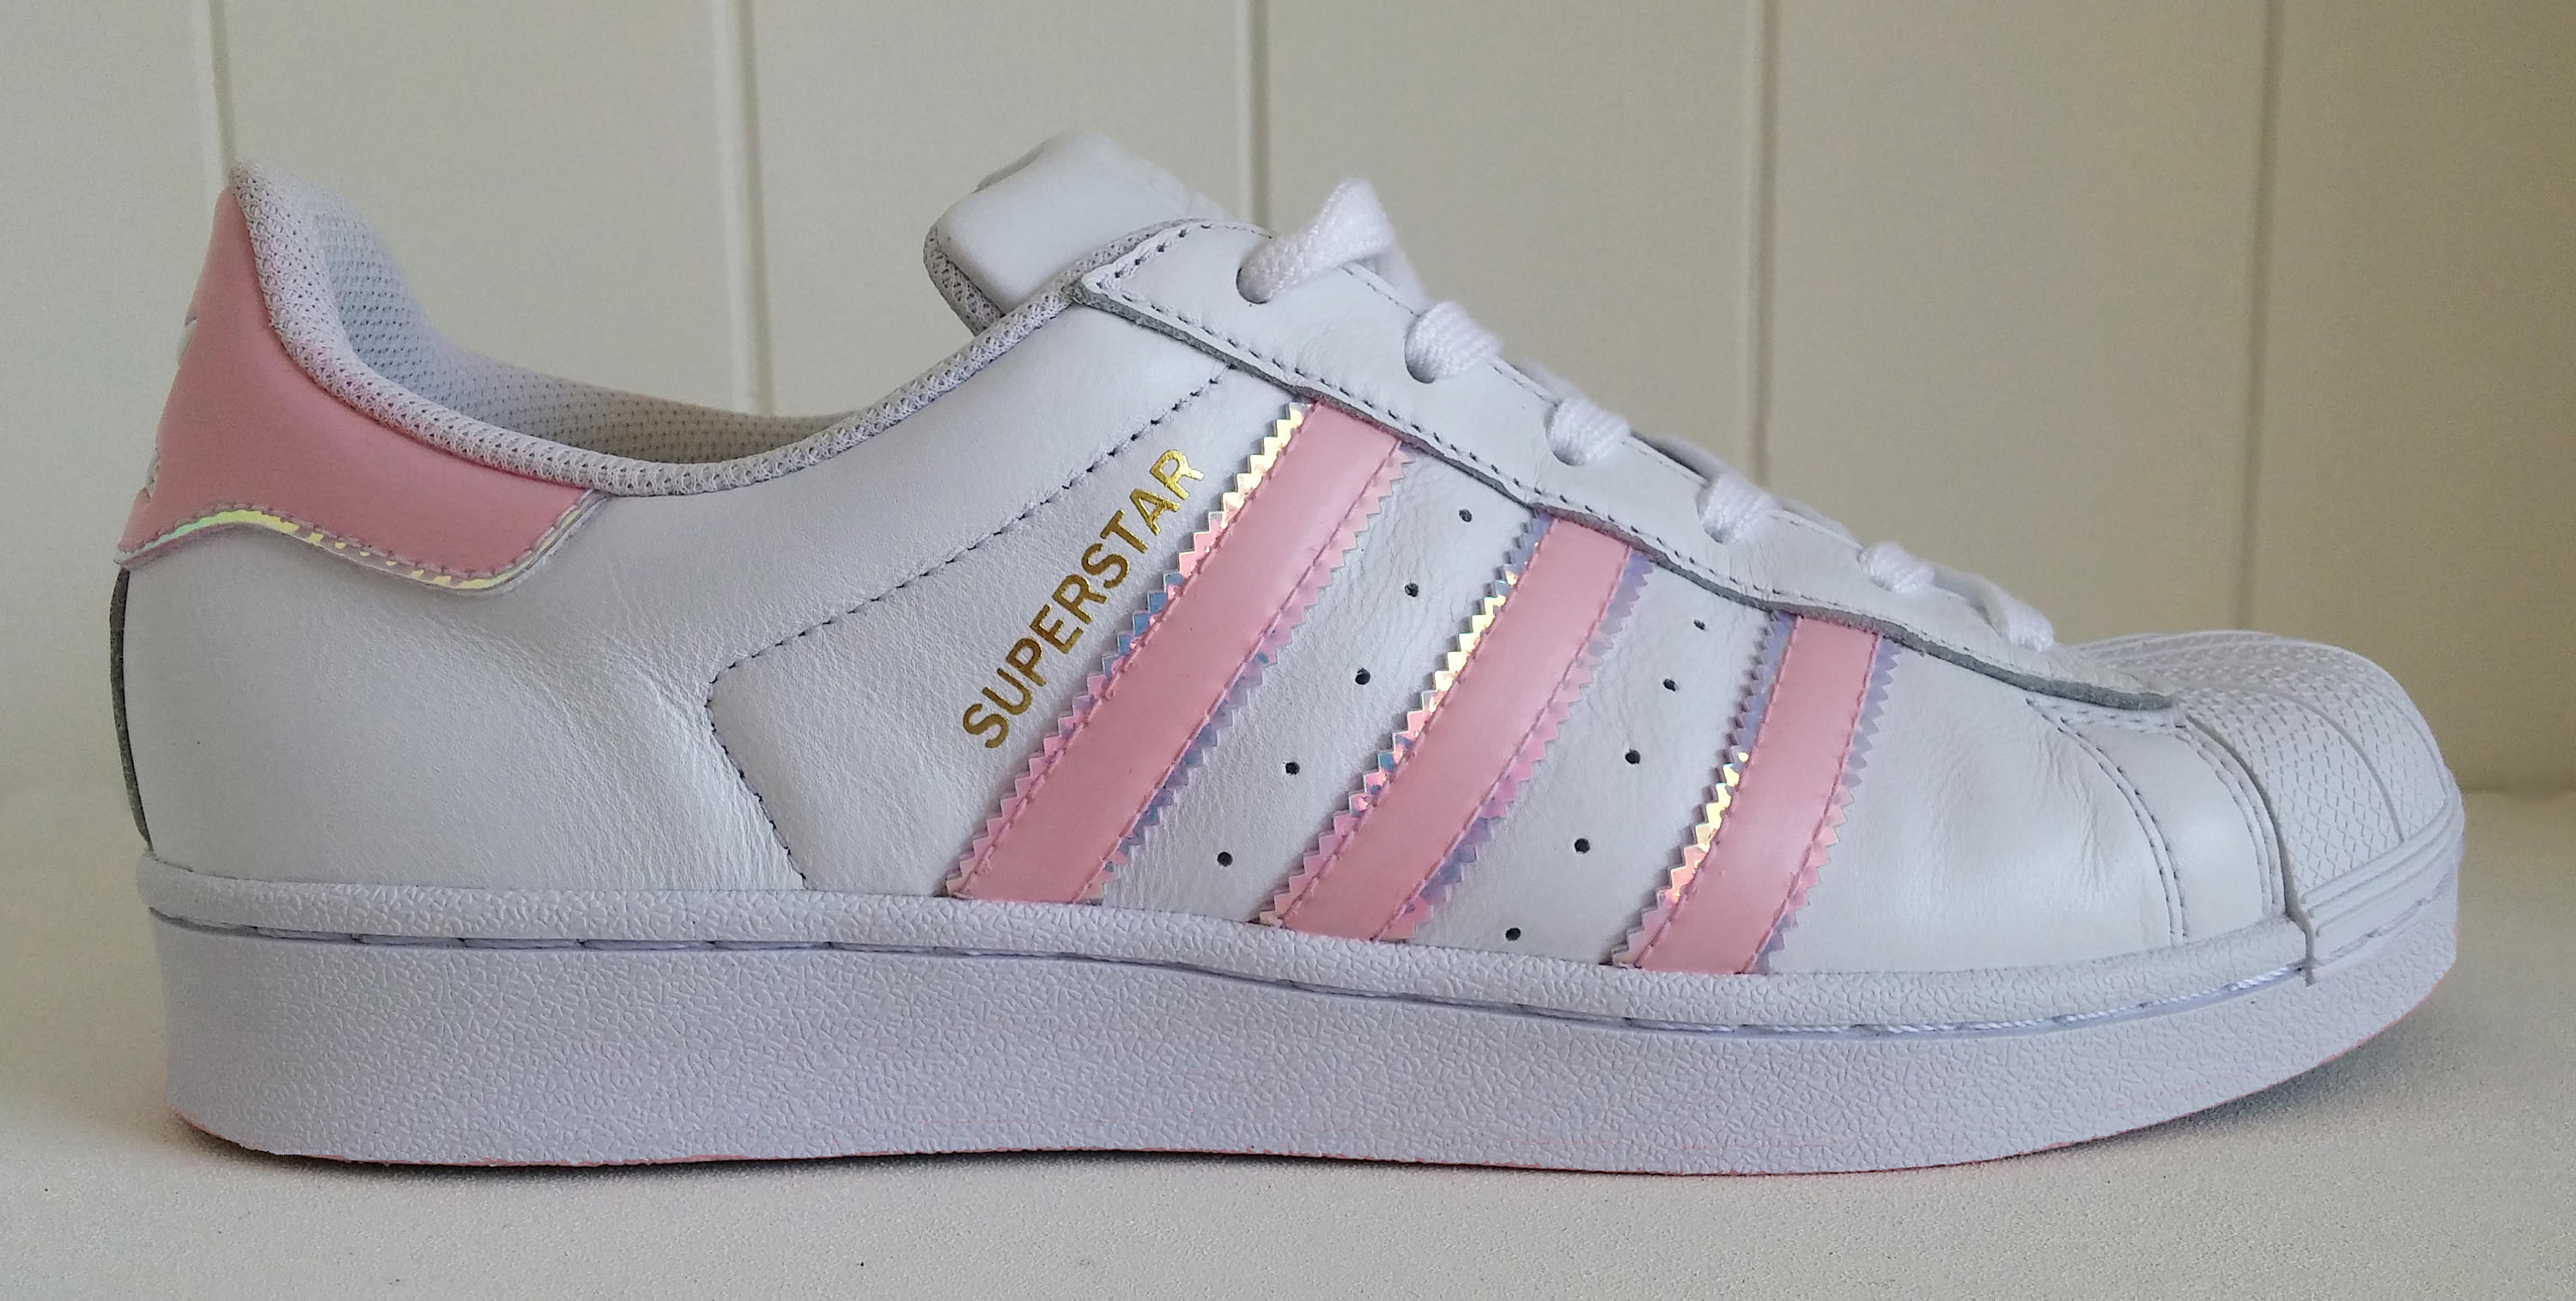 Unicorn Adidas white pink iridescent sneakers